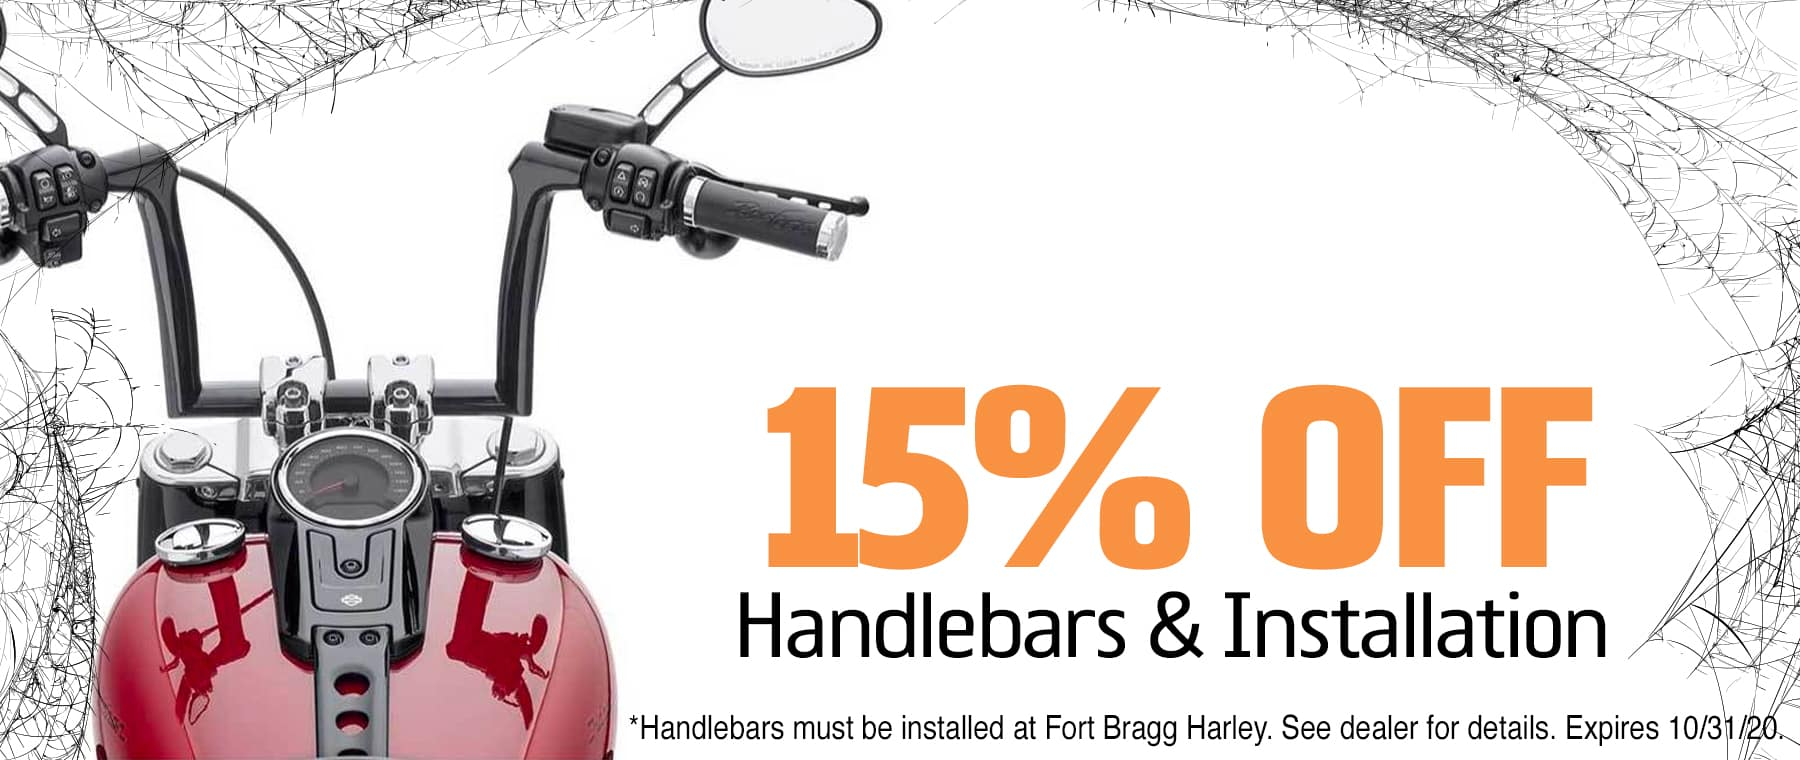 15% OFF Handlebars & Installation at Fort Bragg Harley-Davidson